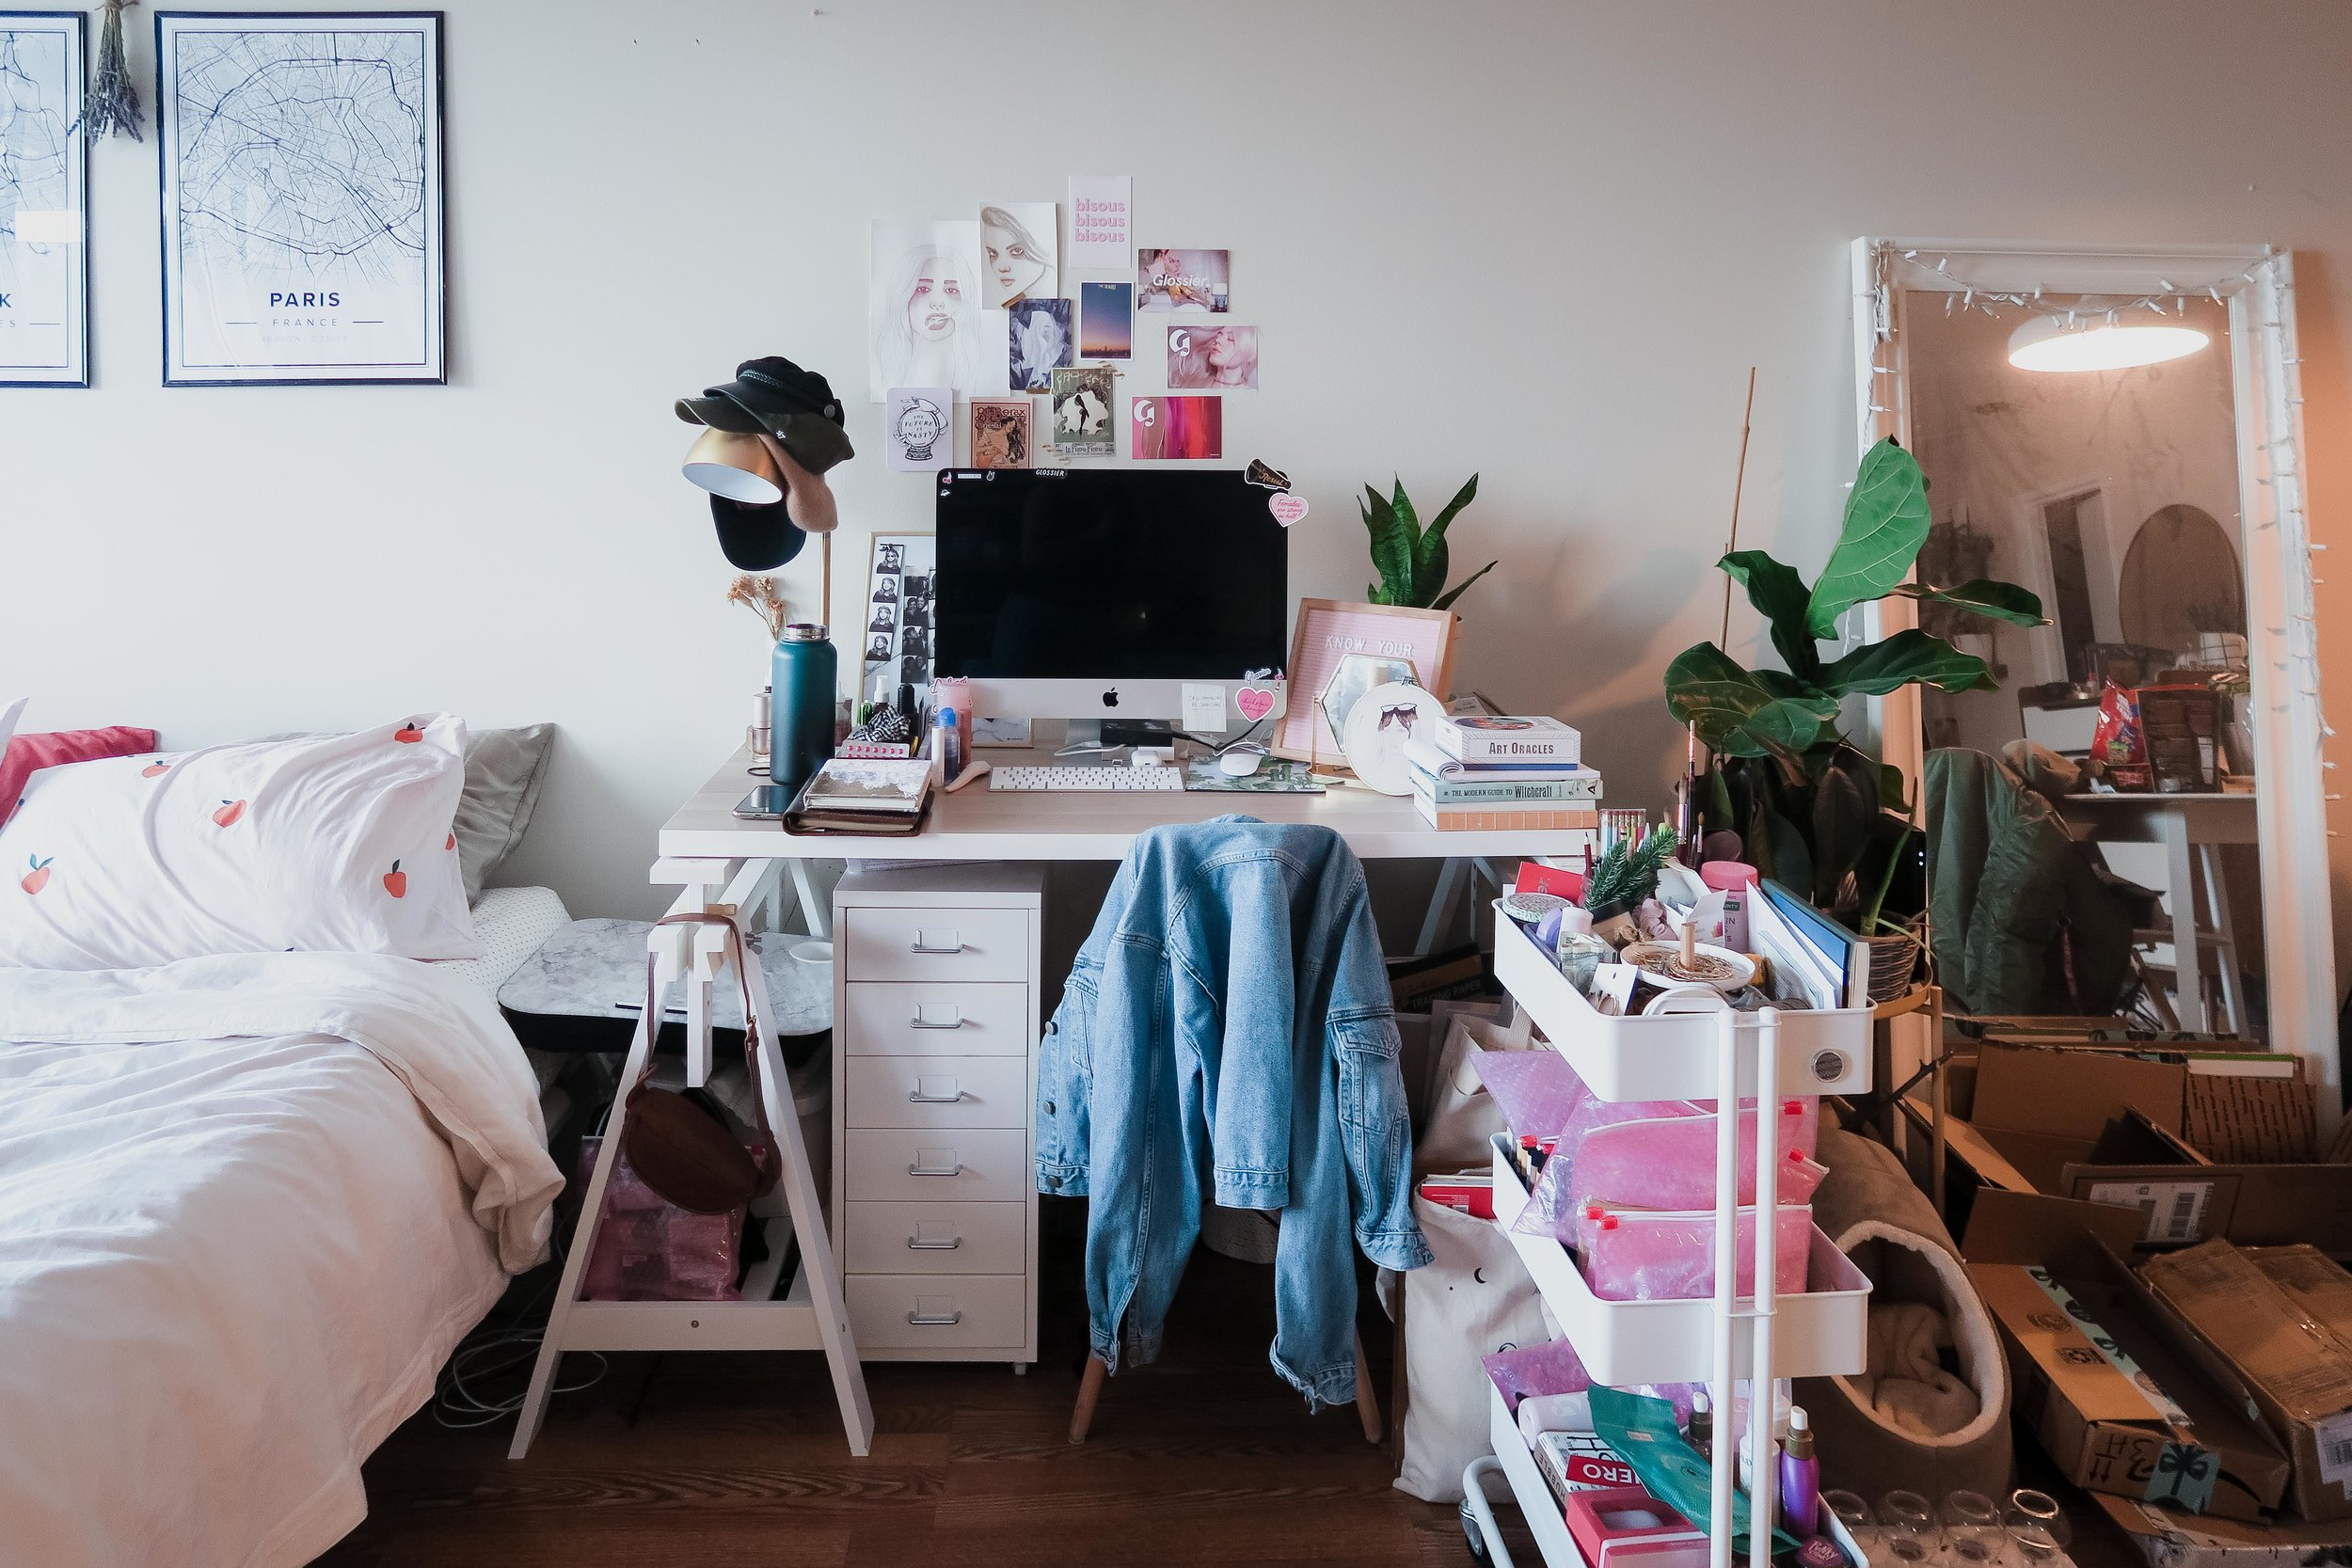 my work space - where most of my clutter & mess lives.